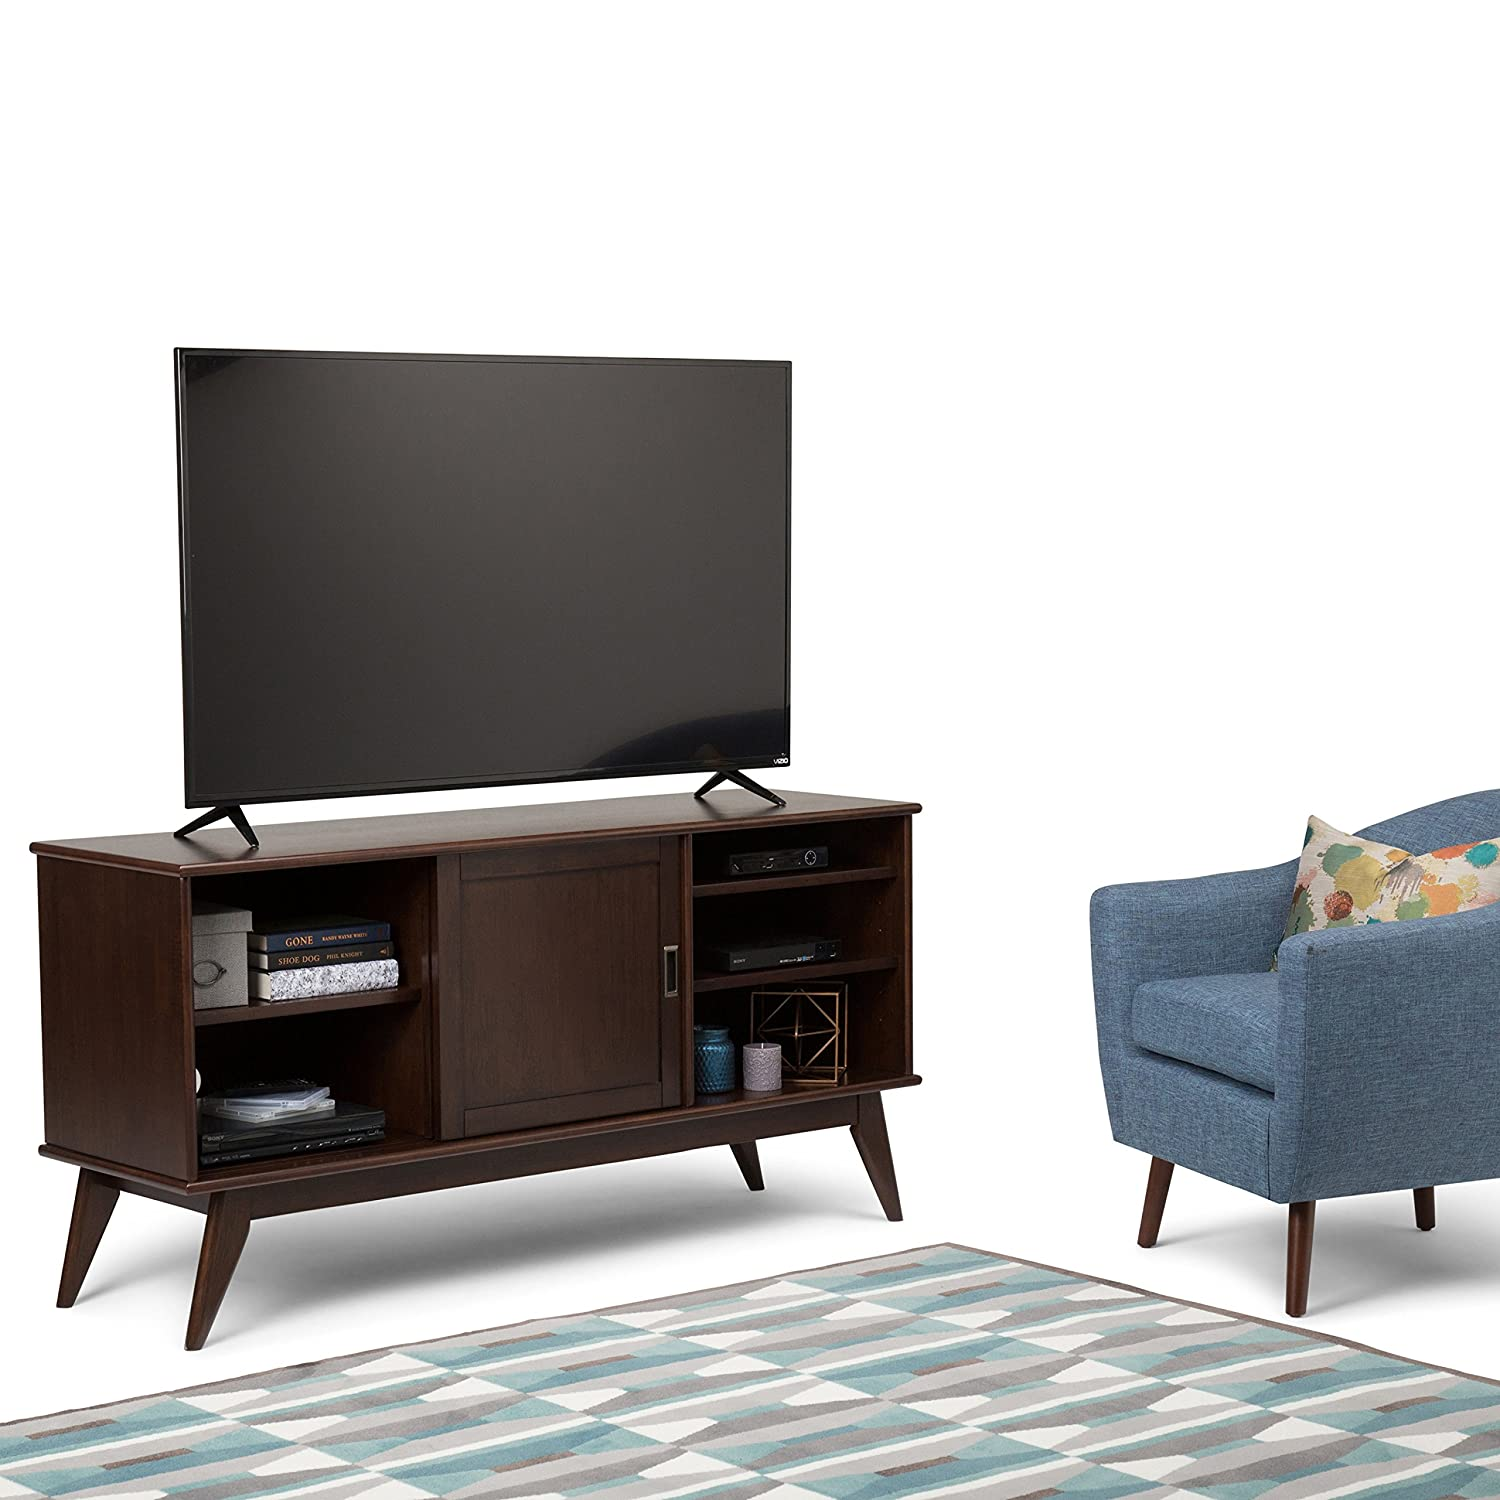 Simpli Home 3AXCDRP-08 Draper Solid Hardwood 60 inch wide Mid Century Modern TV media Stand in Medium Auburn Brown For TVs up to 65 inches